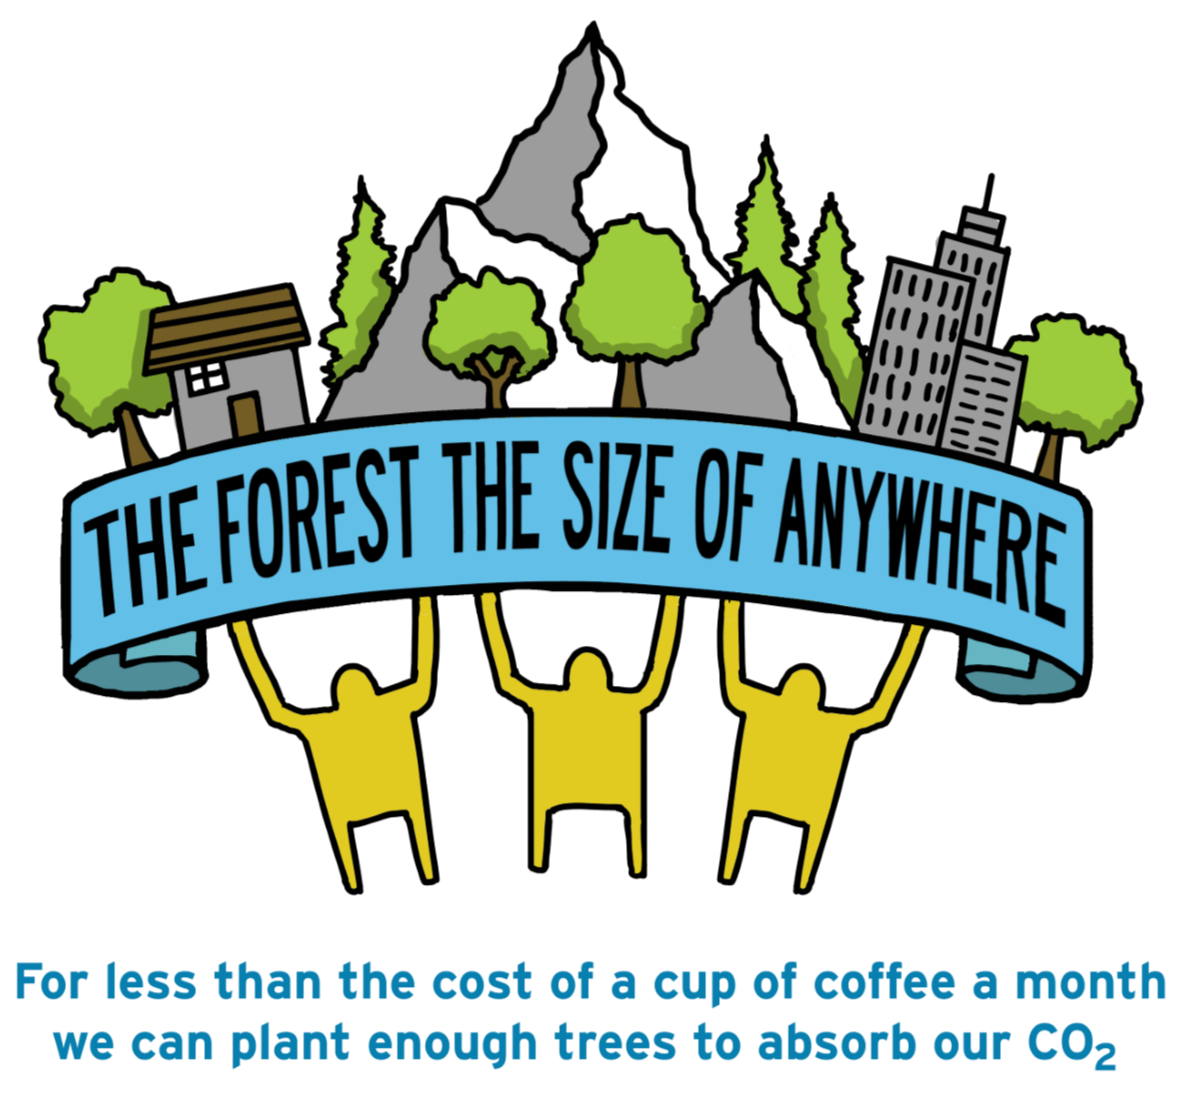 'The Forest the Size of Anywhere'